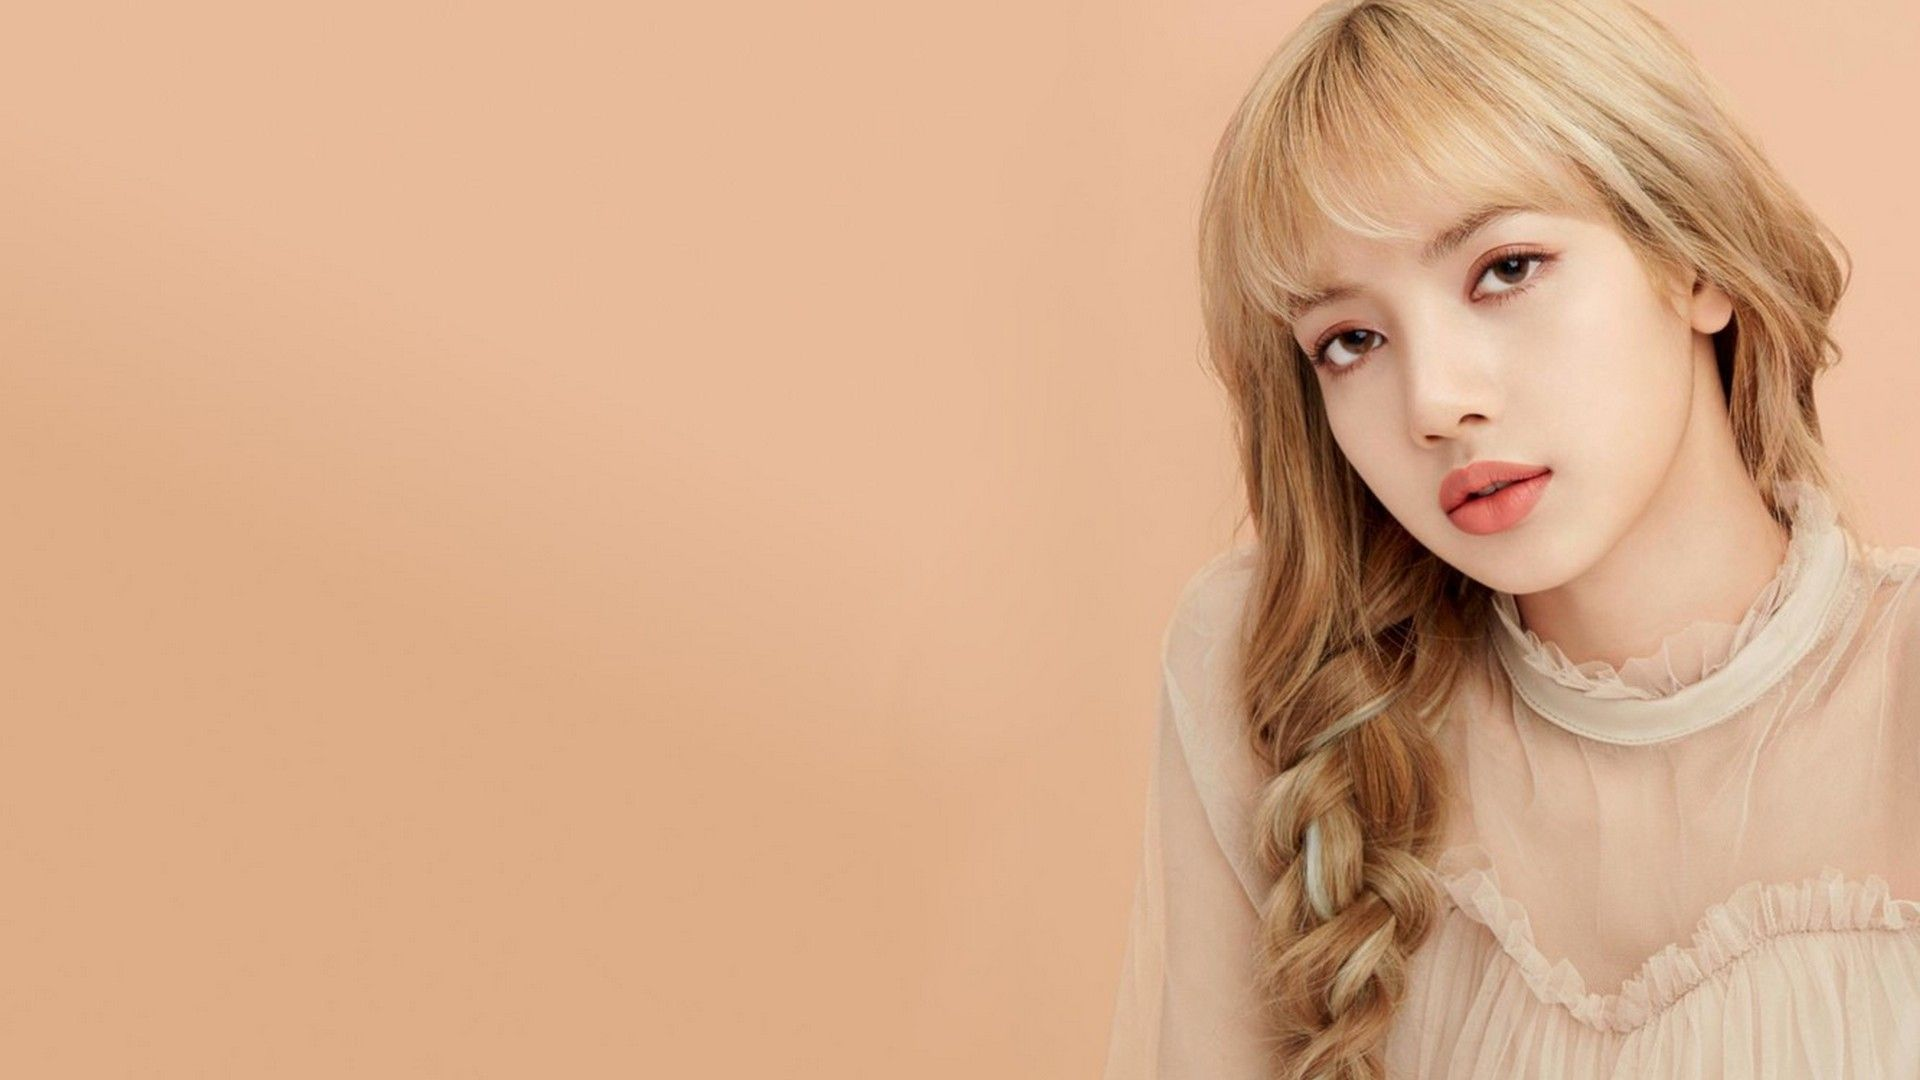 Lisa Blackpink Wallpaper Hd Best Wallpaper Hd Lisa Blackpink Wallpaper Pink Wallpaper Pc Hd Cute Wallpapers